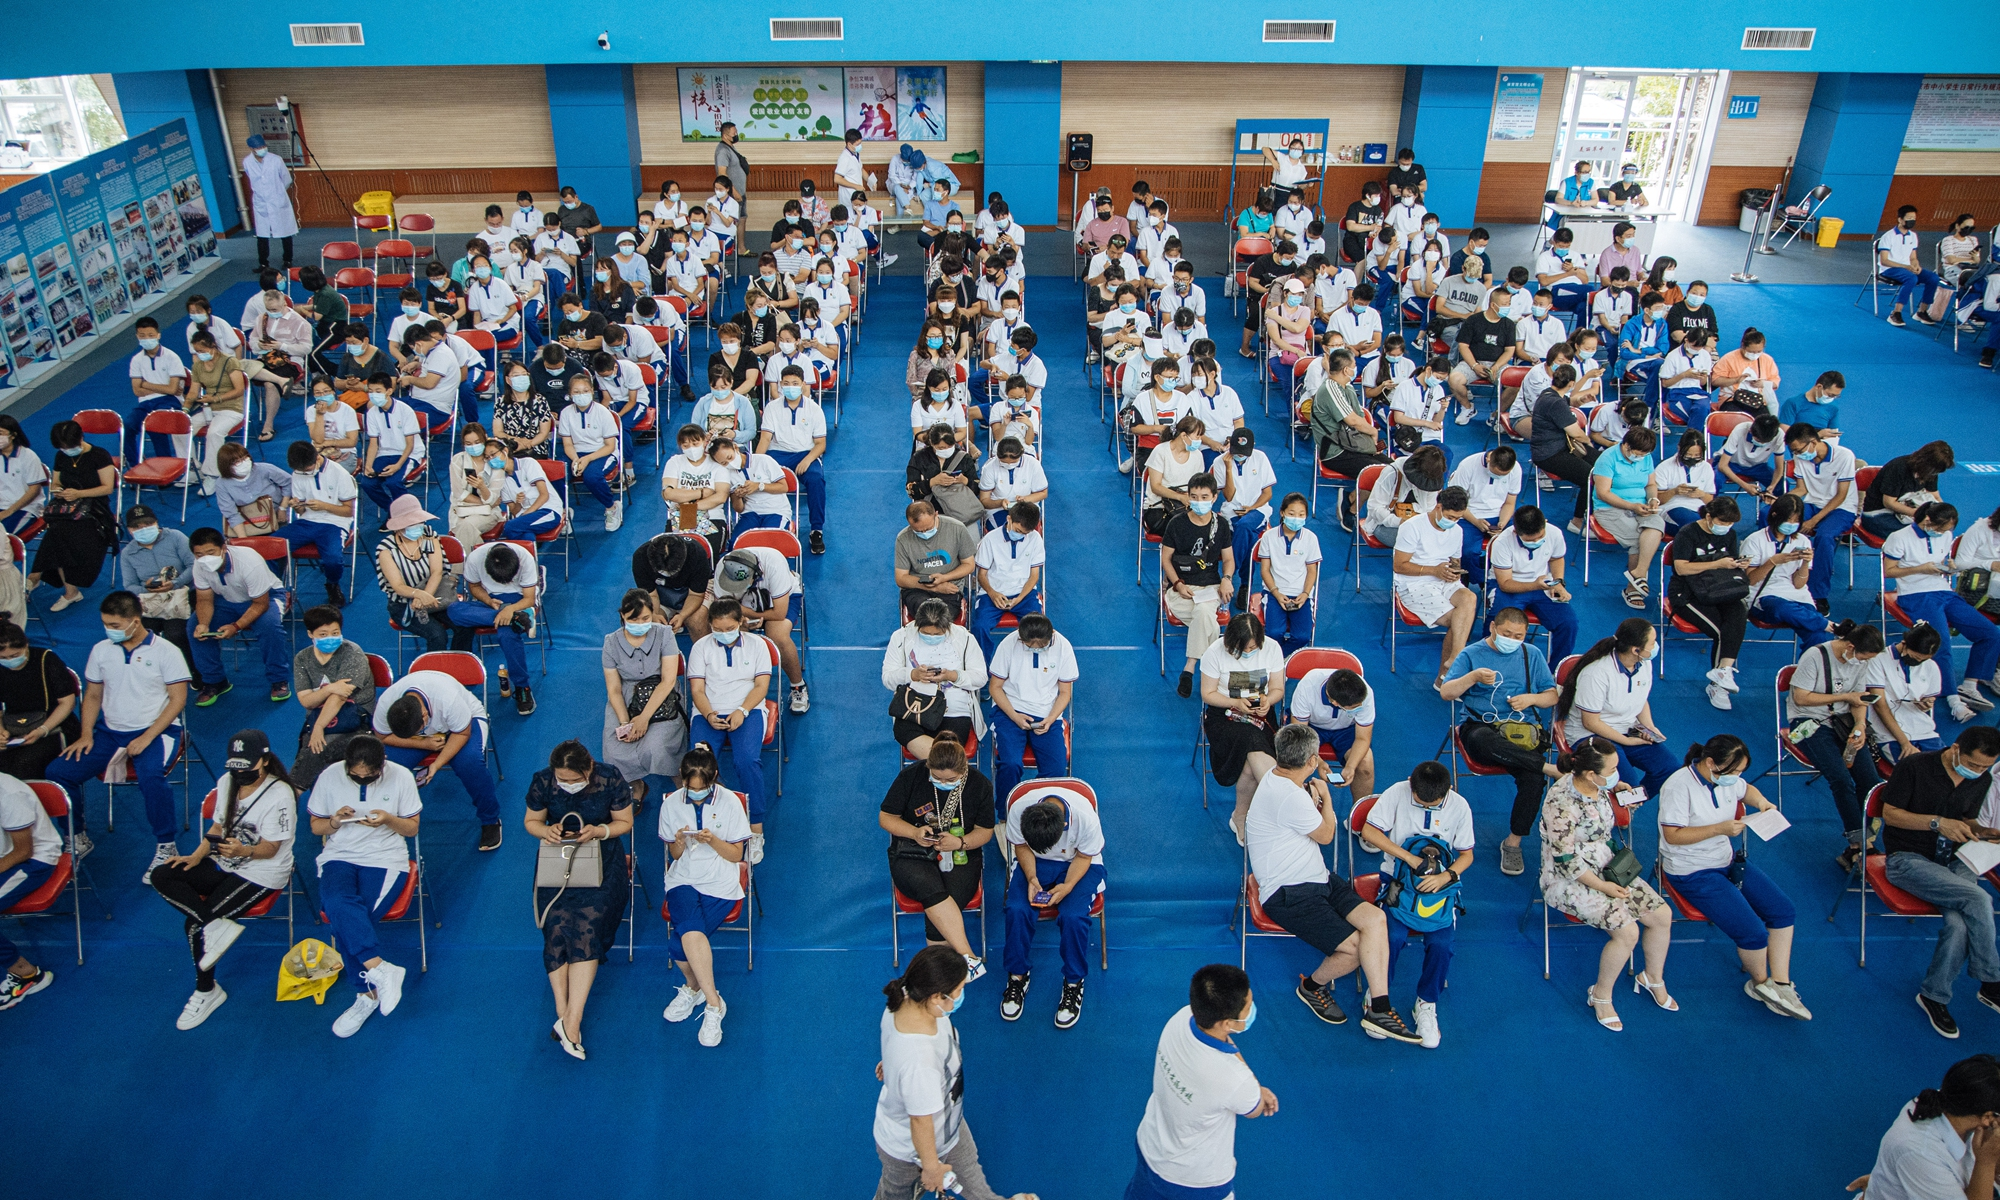 Students and their parents wait for vaccinations at the inoculation center of Pingguoyuan Middle School in Shijingshan district, Beijing as the capital city is promoting COVID-19 vaccinations for those aged 12-17. Photo: Li Hao/Global Times